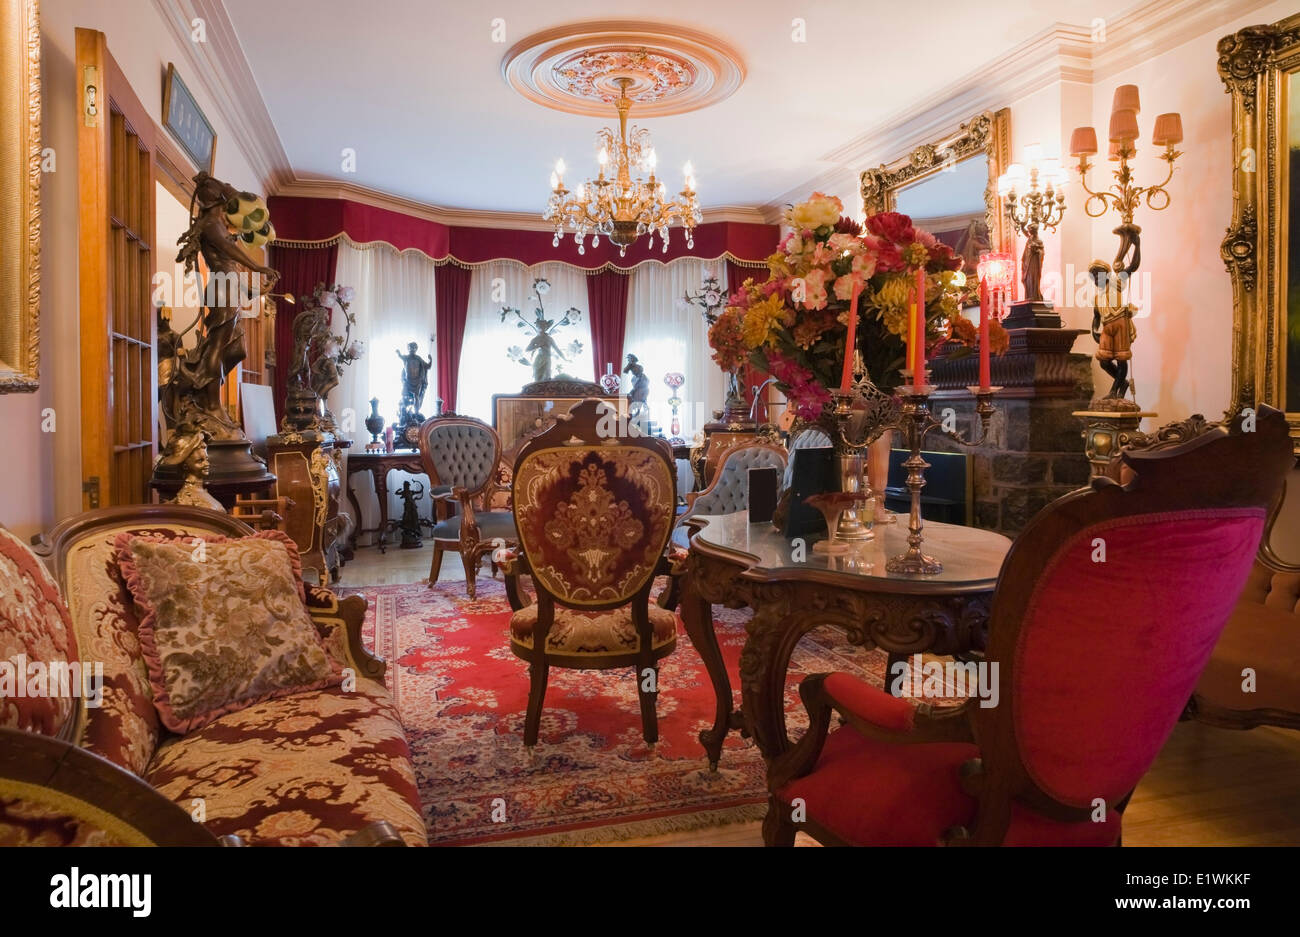 Antique Furniture Furnishings Adorn A Living Room Inside A Victorian Stock Photo Alamy